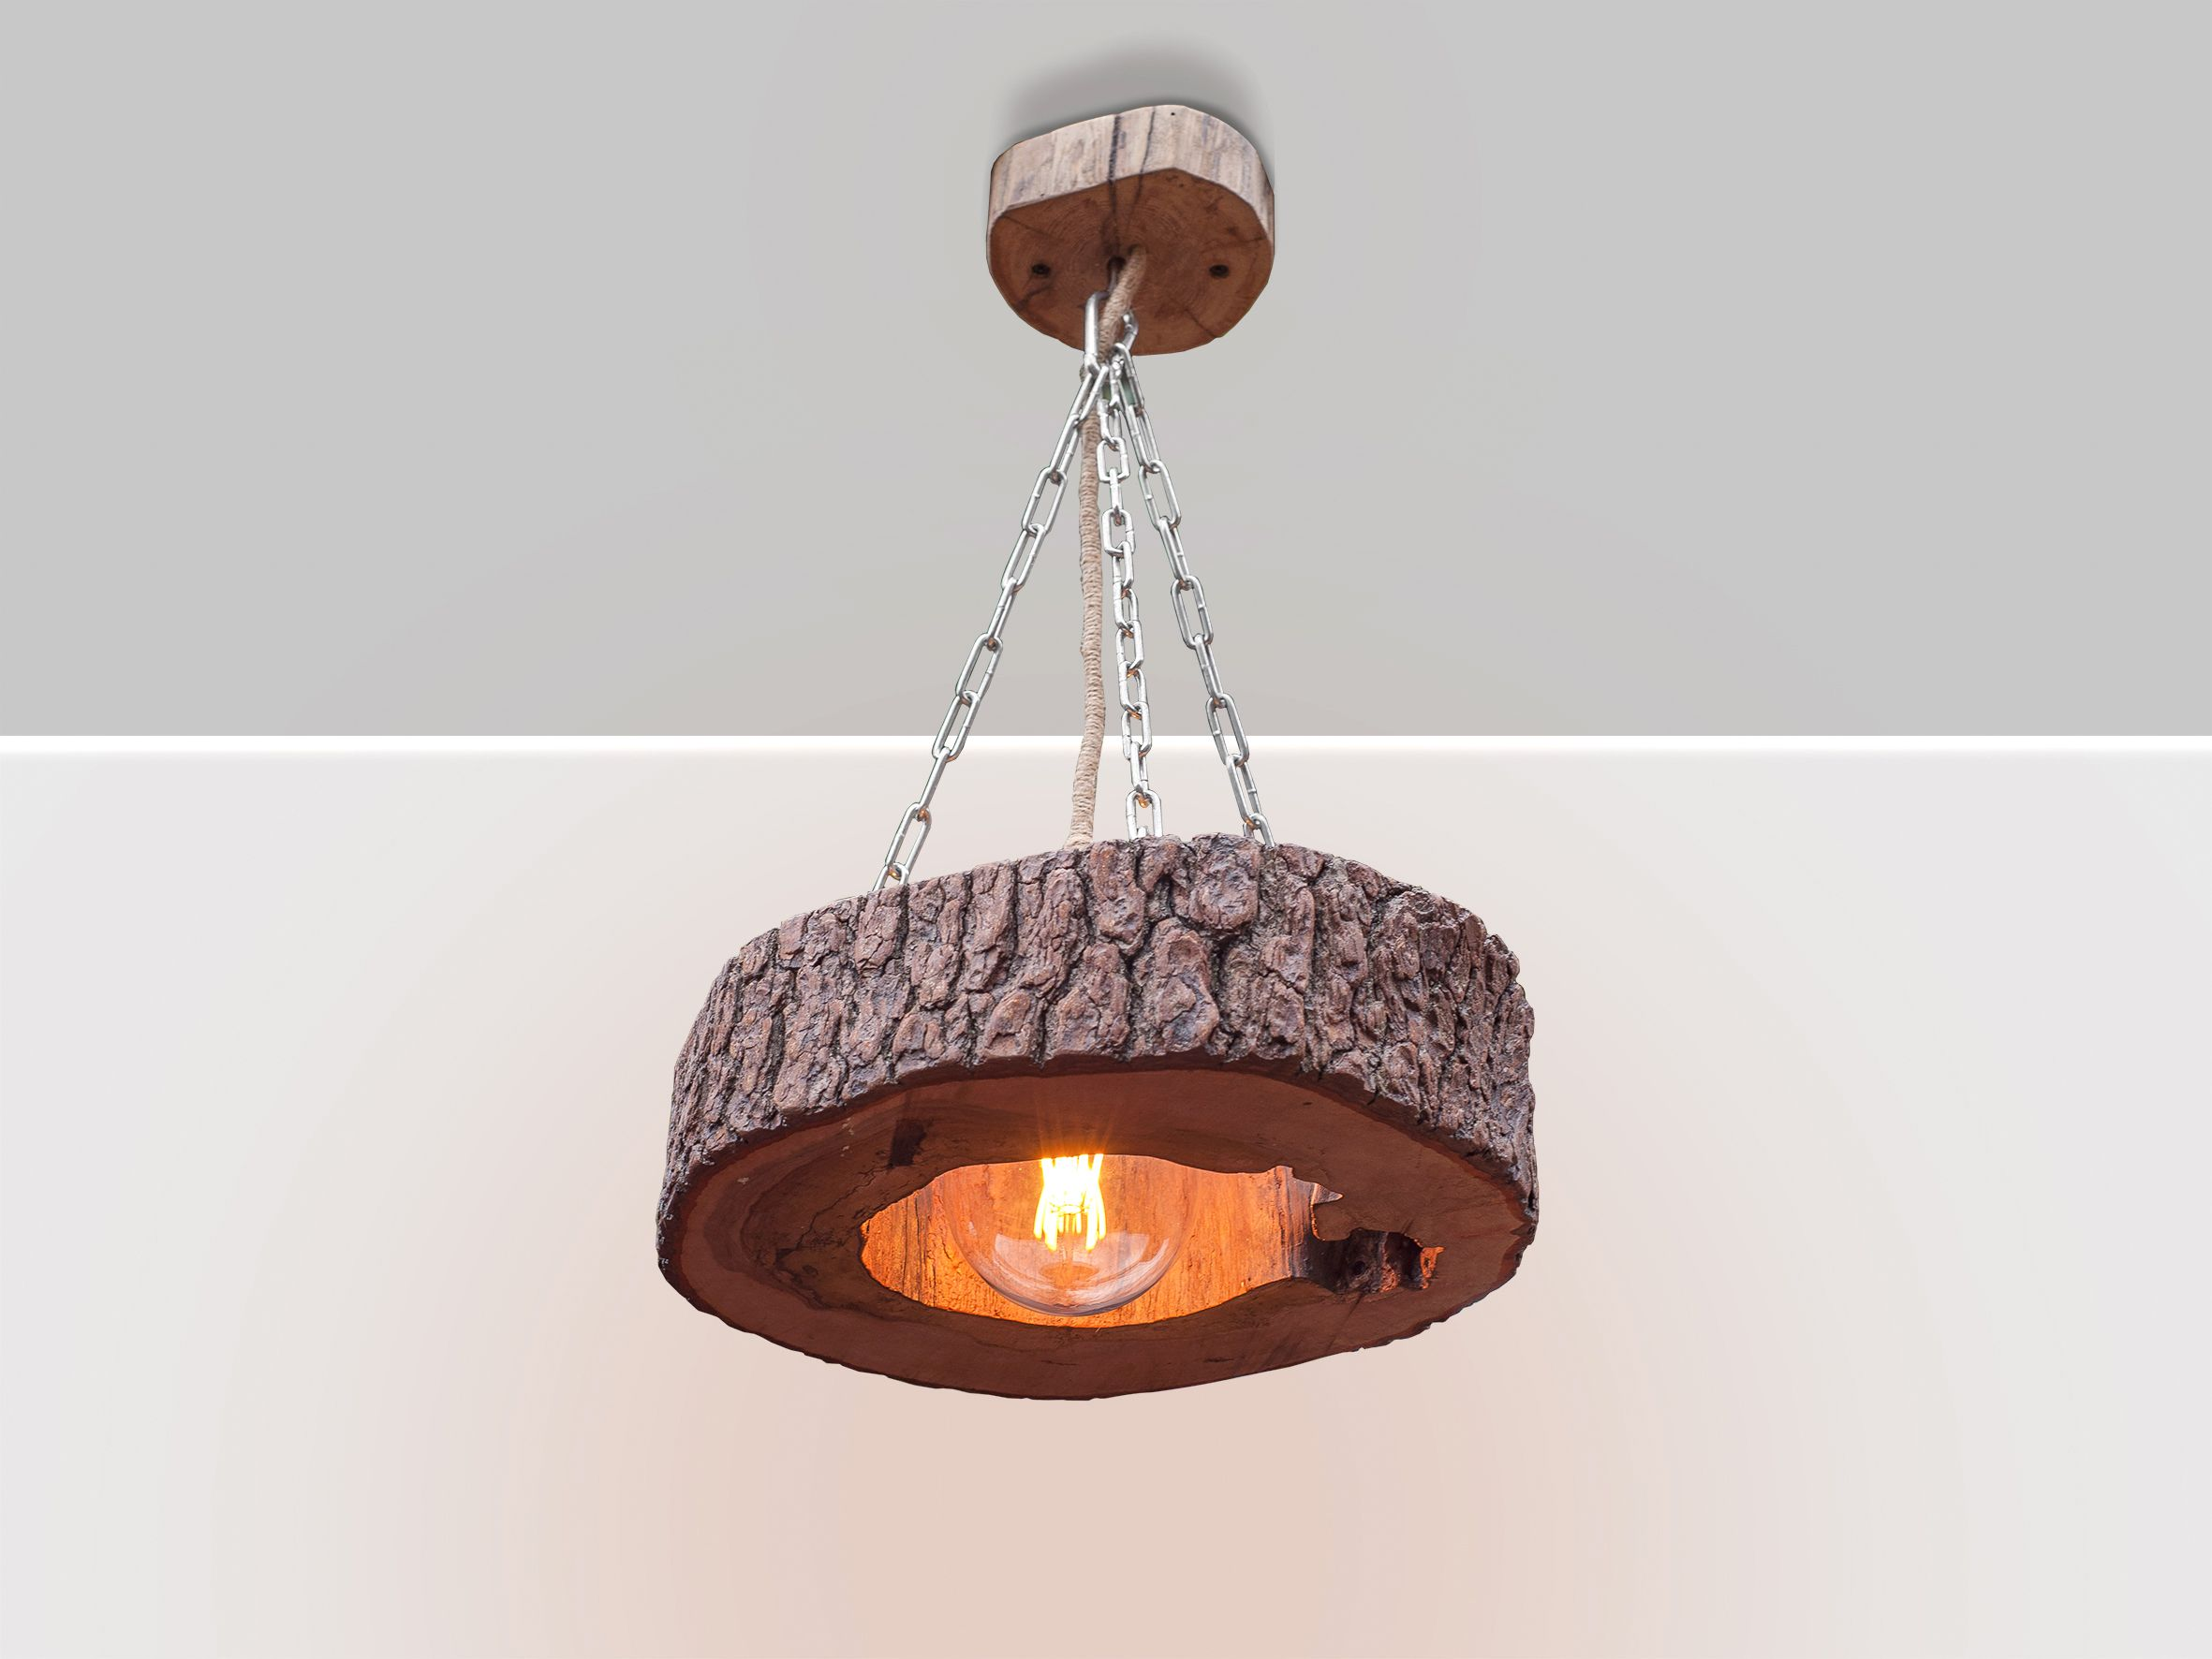 Wooden Hanging Lamp #Pendantlighting #Woodlamp #Woodenlamp #Woodenlight #Hanginglamp #Chandelier #